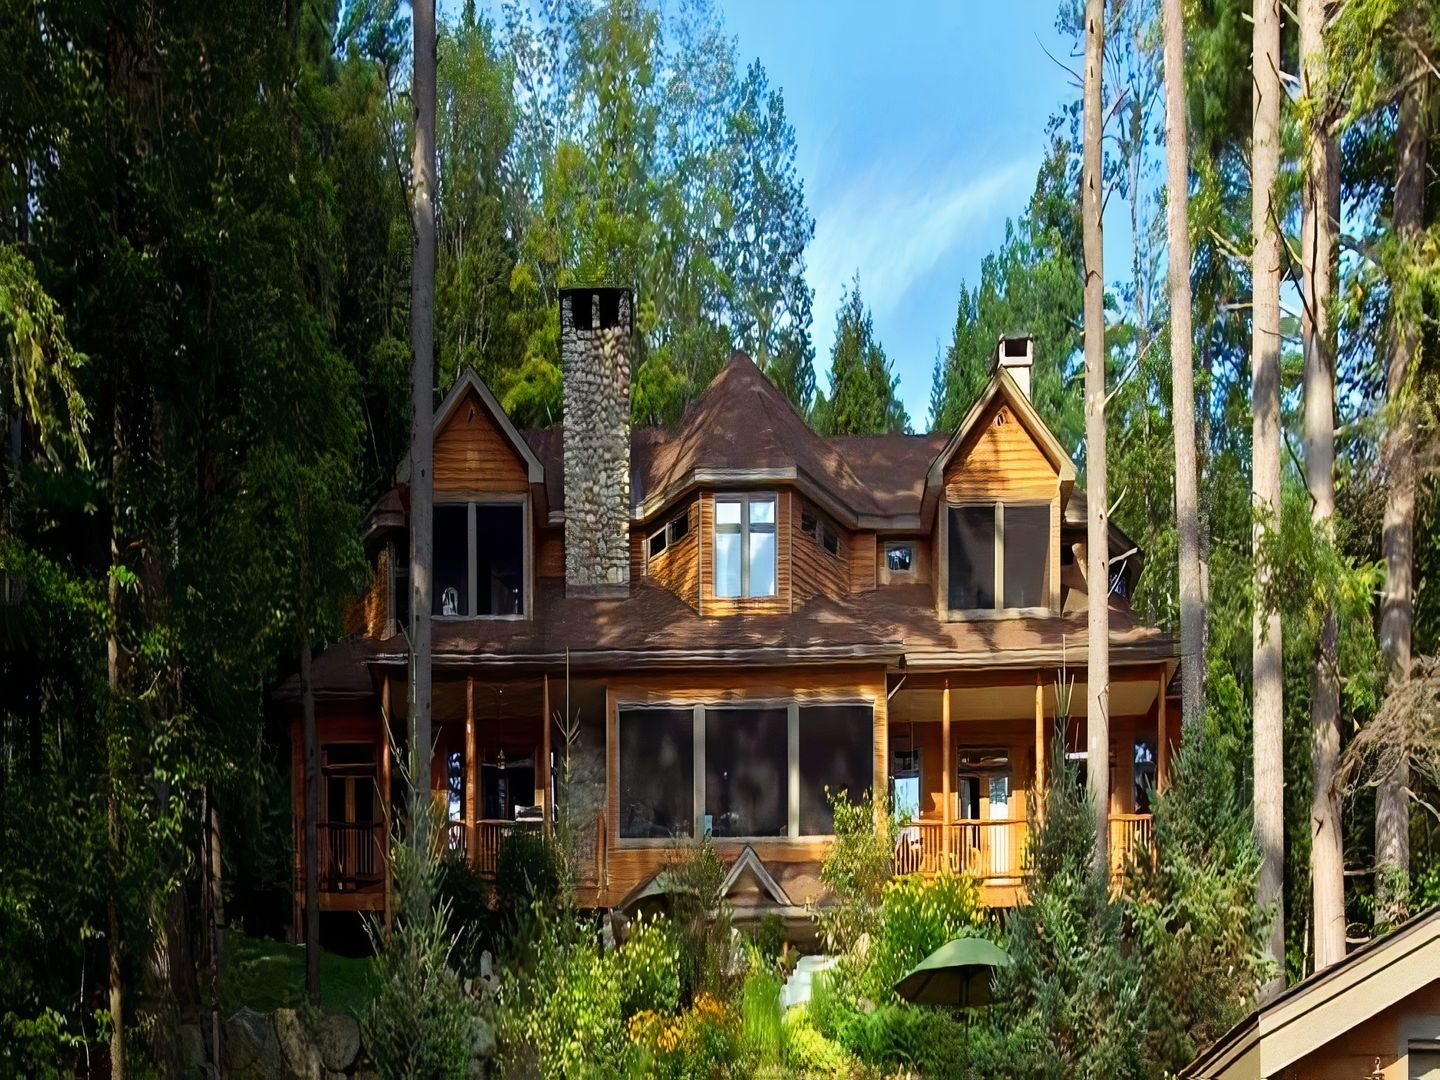 A house with trees in the background at The Fern Lodge.